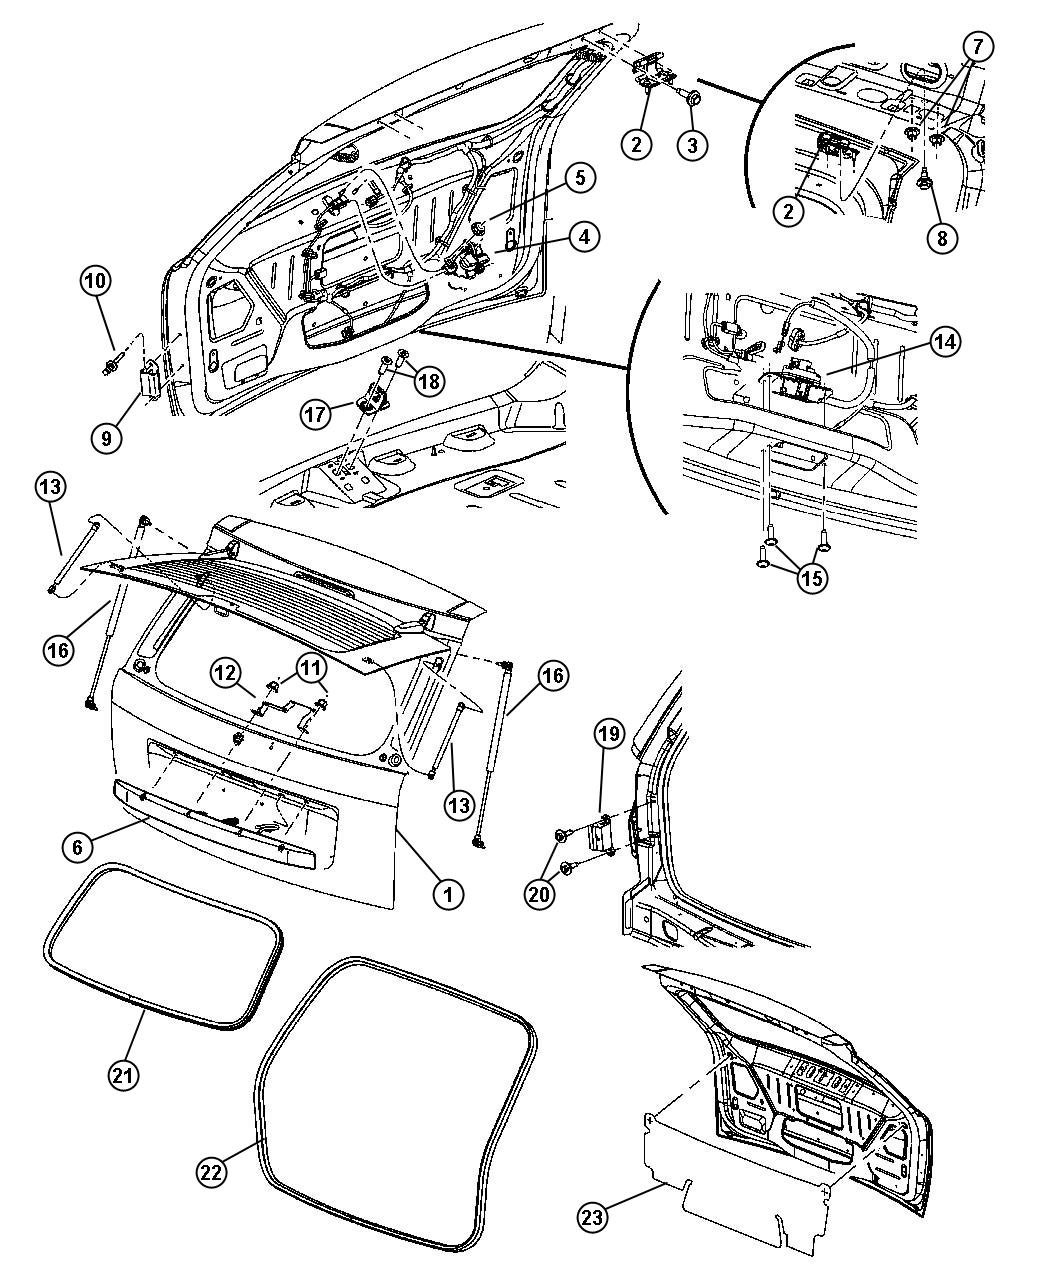 Jeep Grand Cherokee Latch. Liftgate. Up to 8-28-06